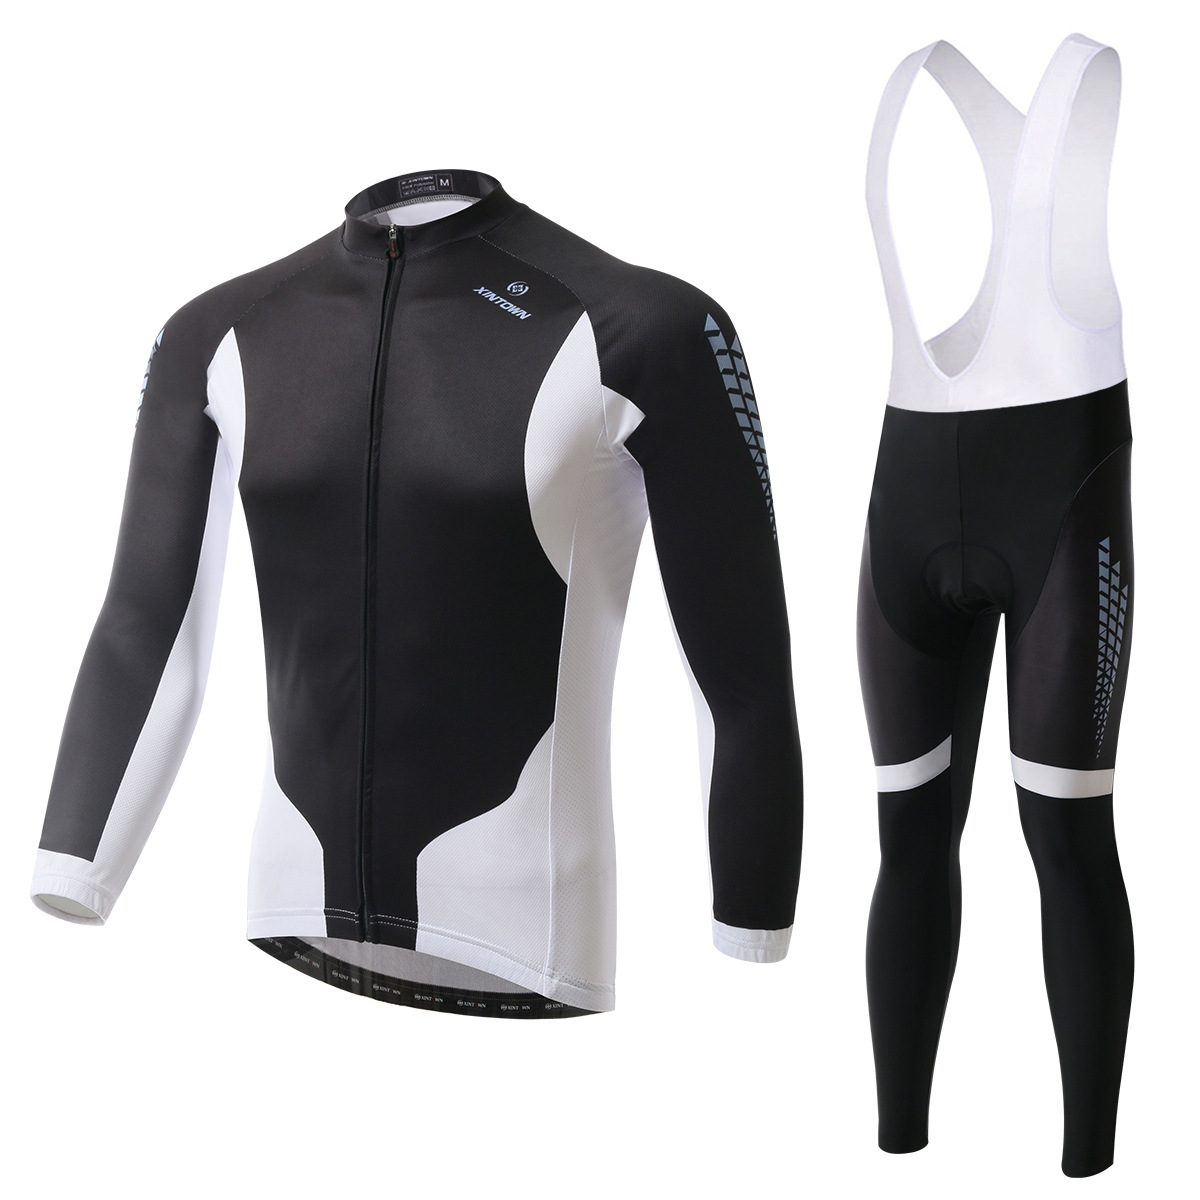 XINTOWN black Jazz bike riding jersey long sleeve suit wear bicycle suits fleece wind warm functional underwear